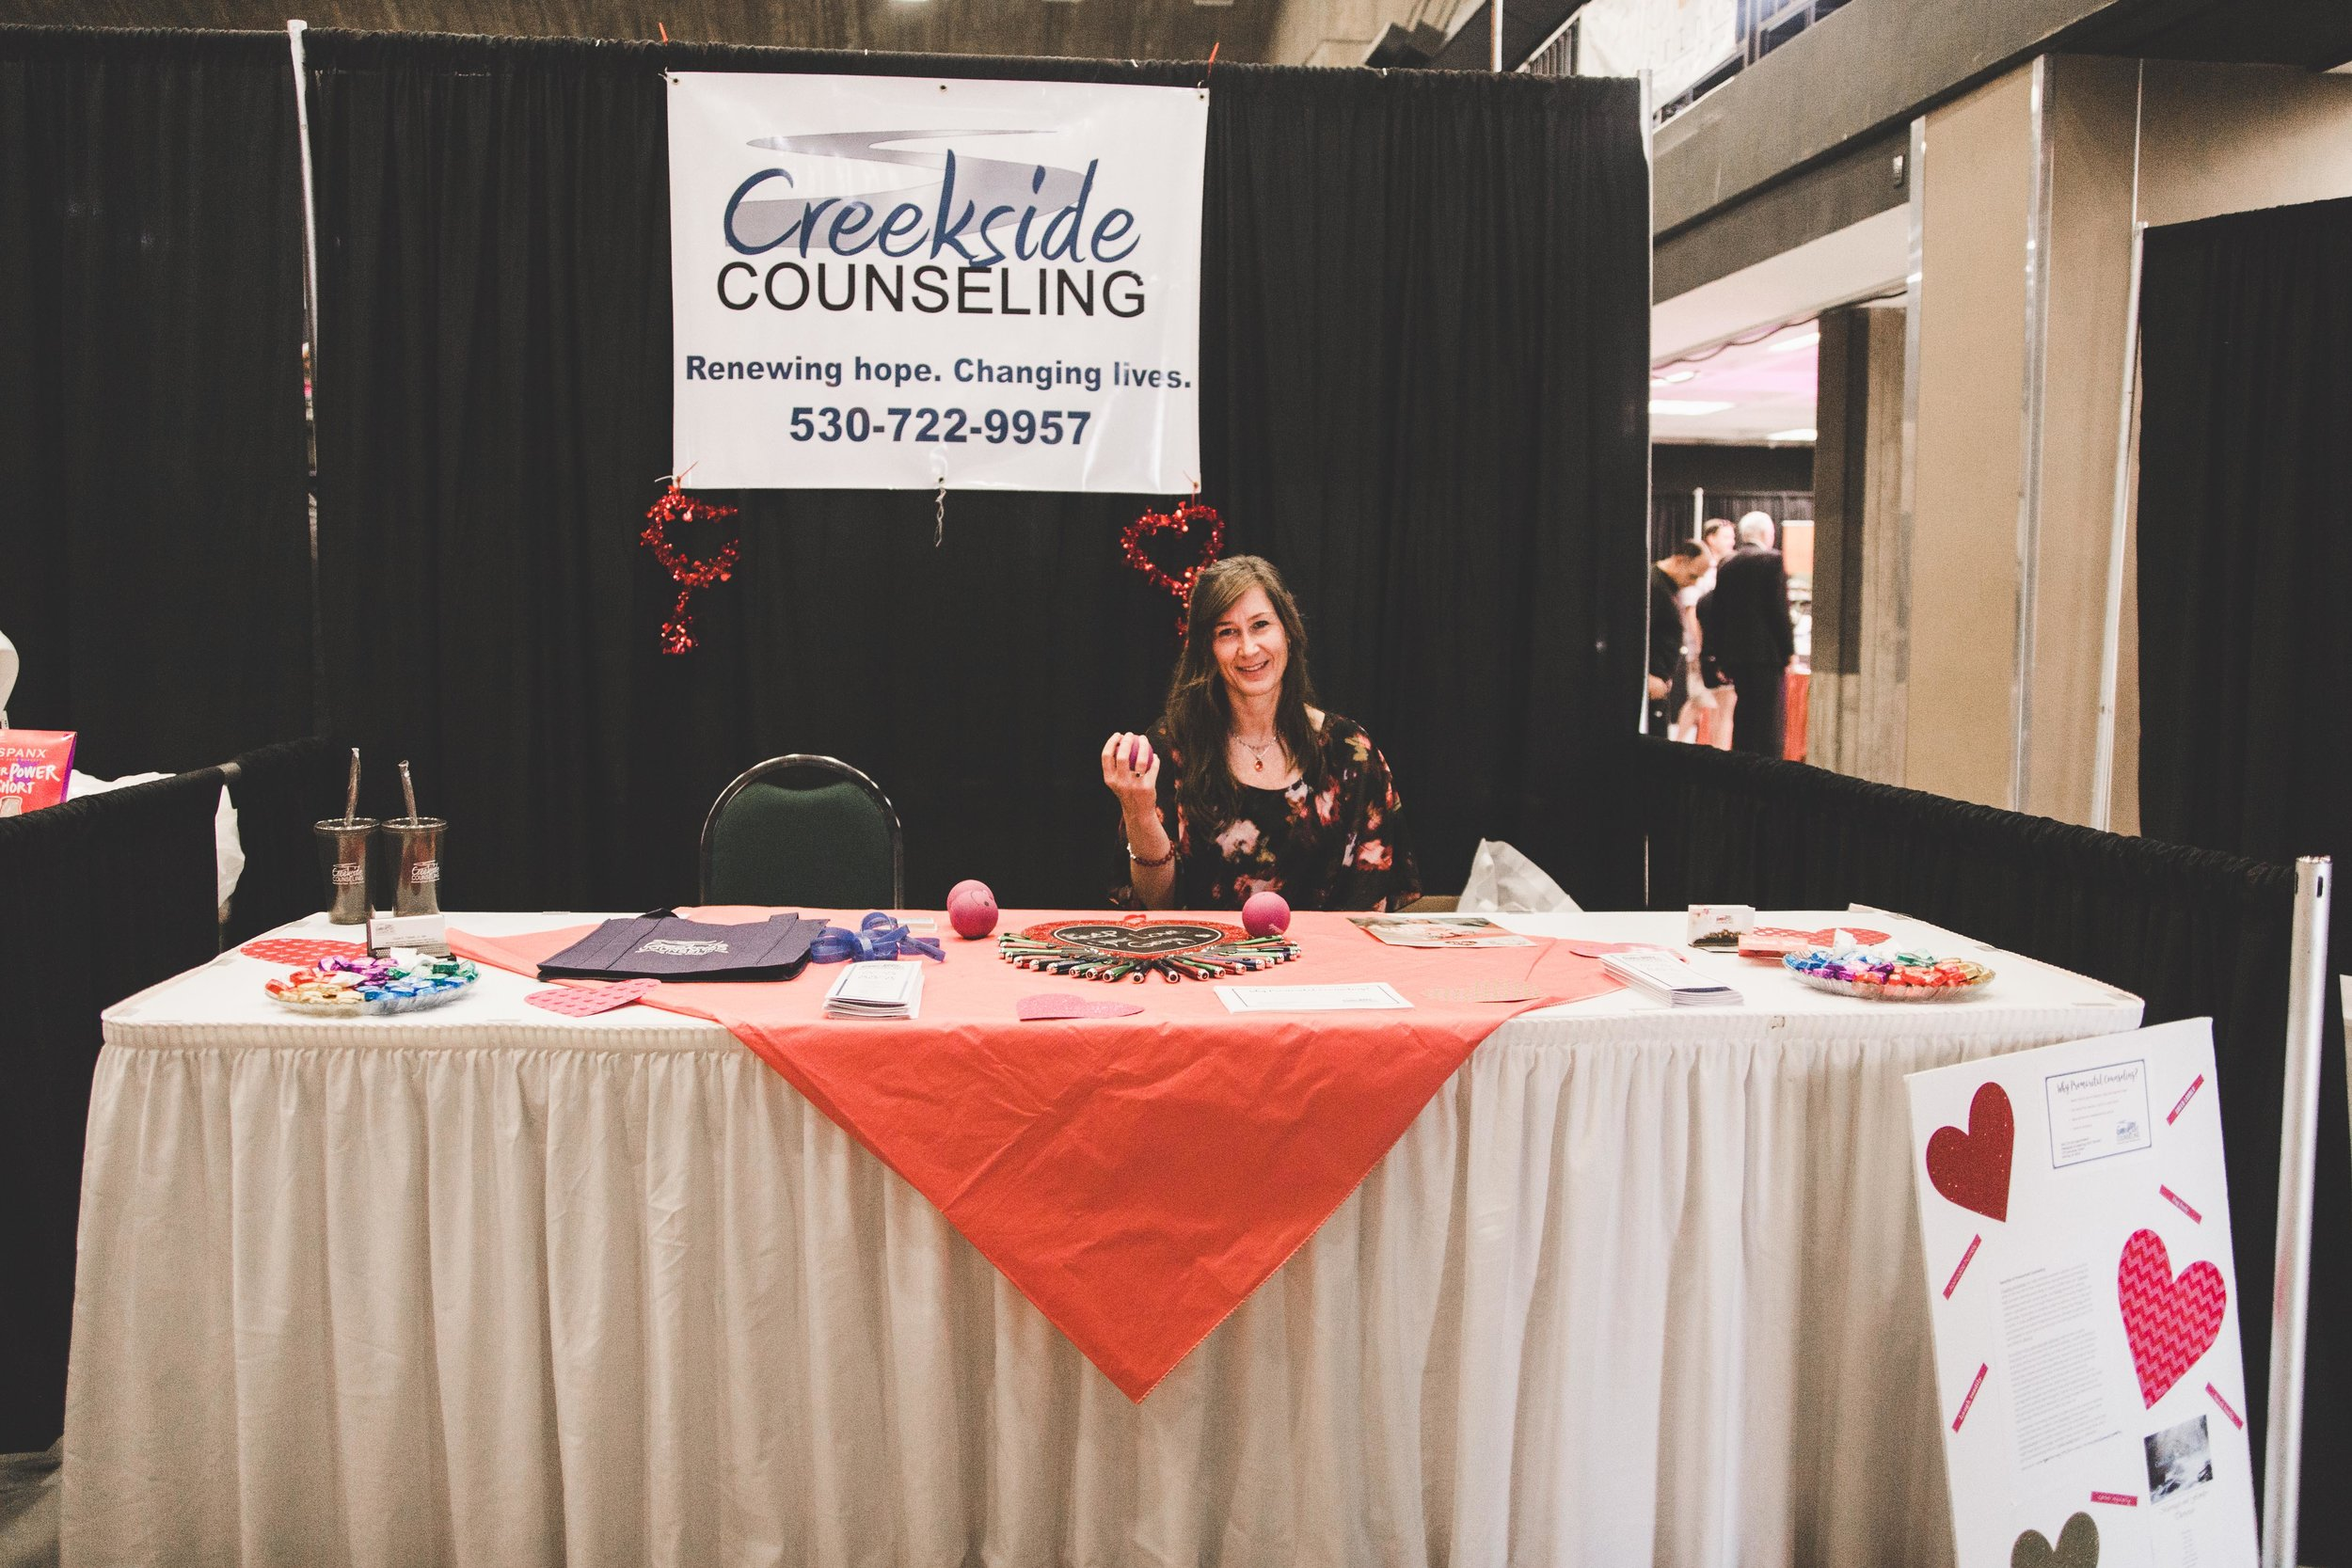 Creekside Counseling